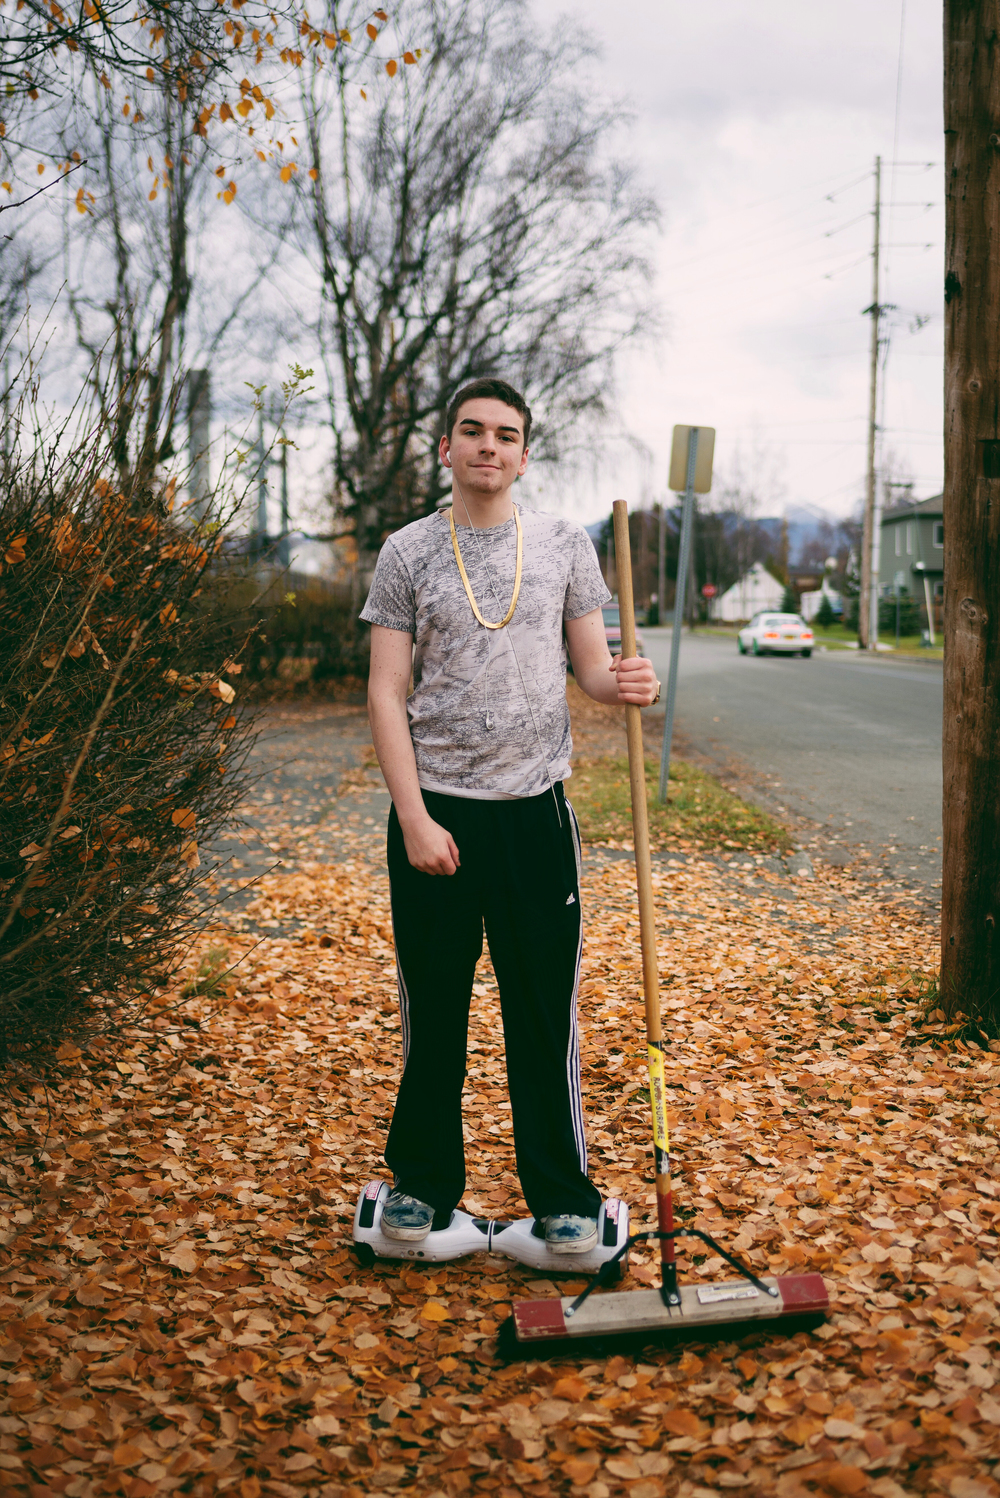 West High School Senior, Paul Marsch, raking leaves on his Hoverboard in South Addition, Anchorage. October 2015.